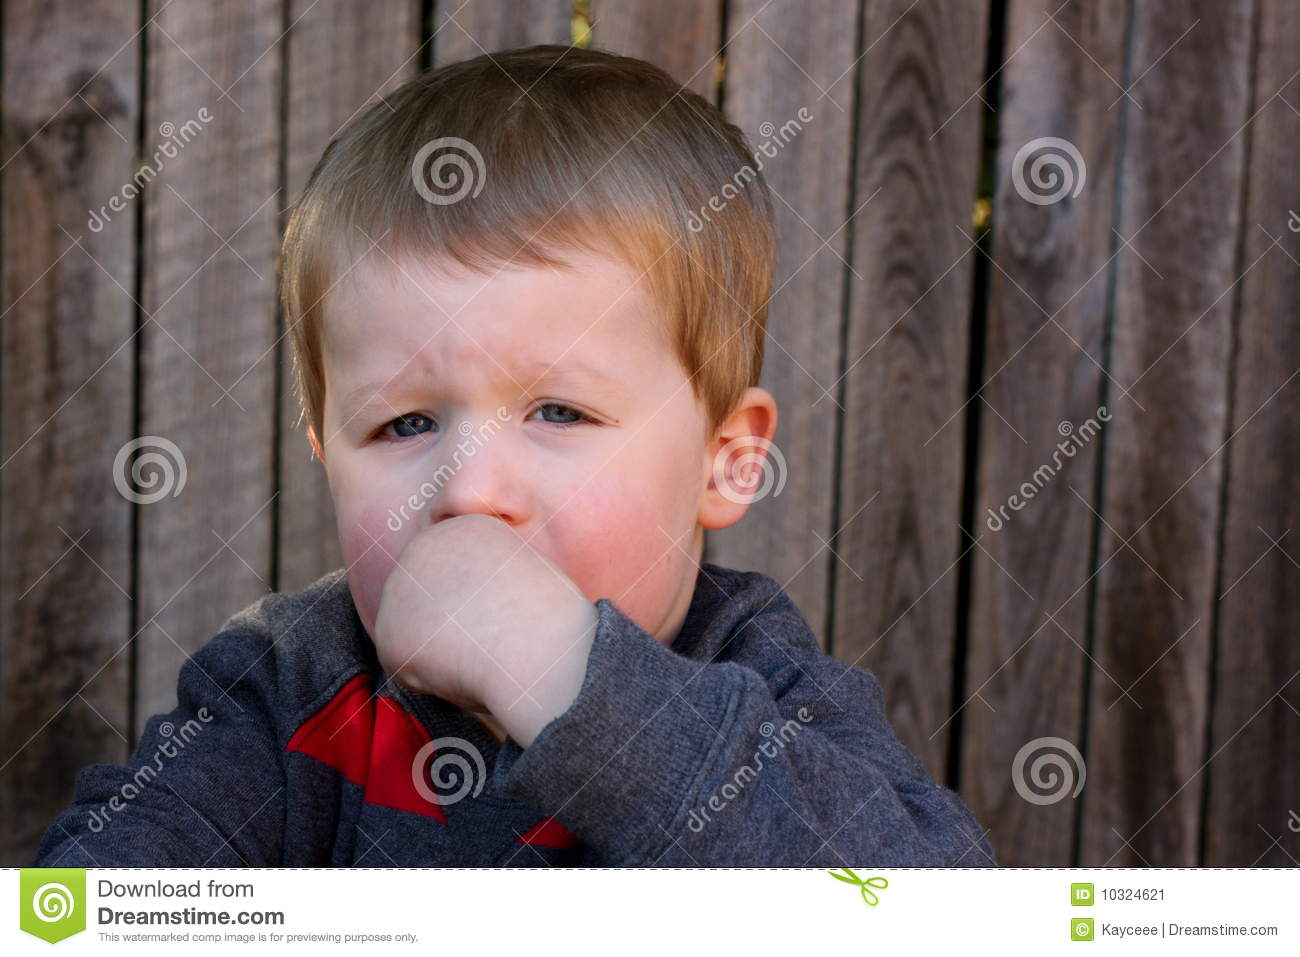 Young Child Looking Upset Stock Image   Image  10324621